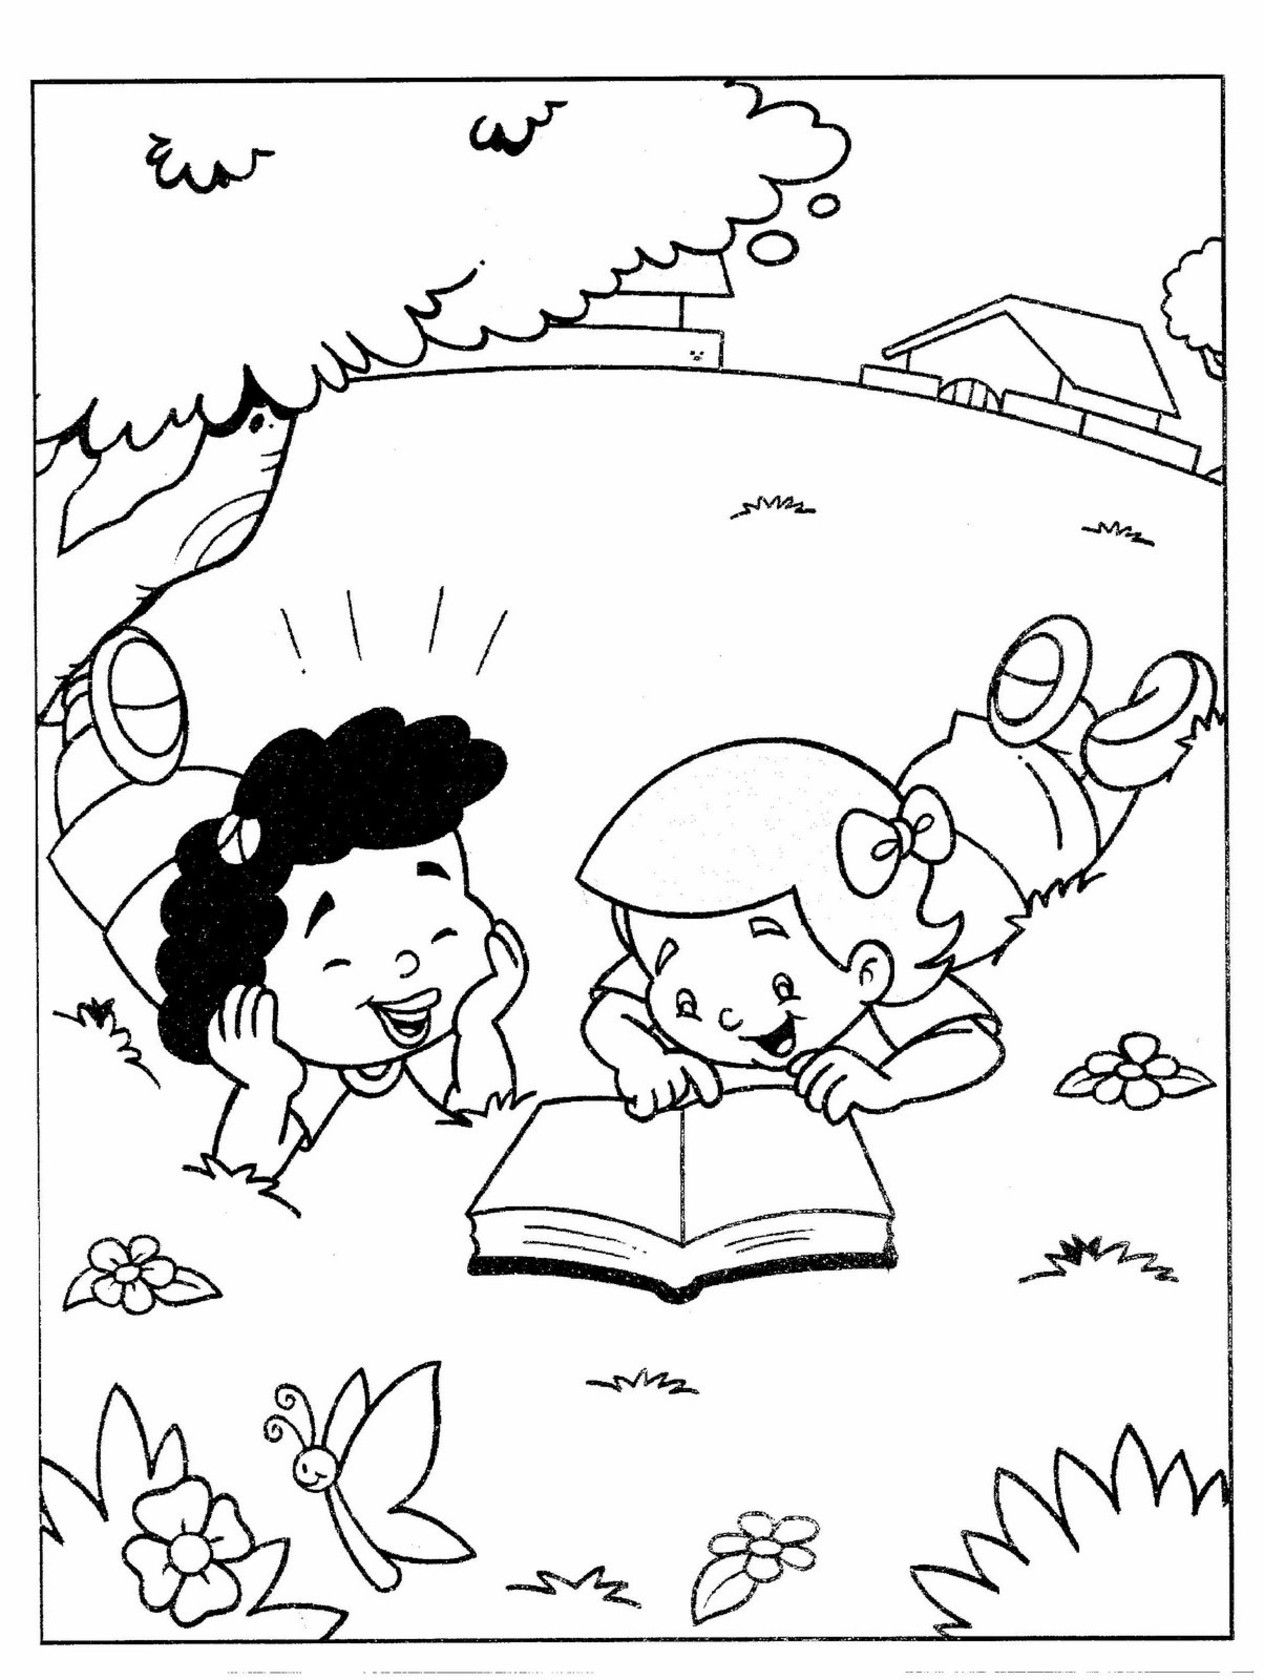 Free Nature Coloring Pages 2 Children Reading Book In The Garden